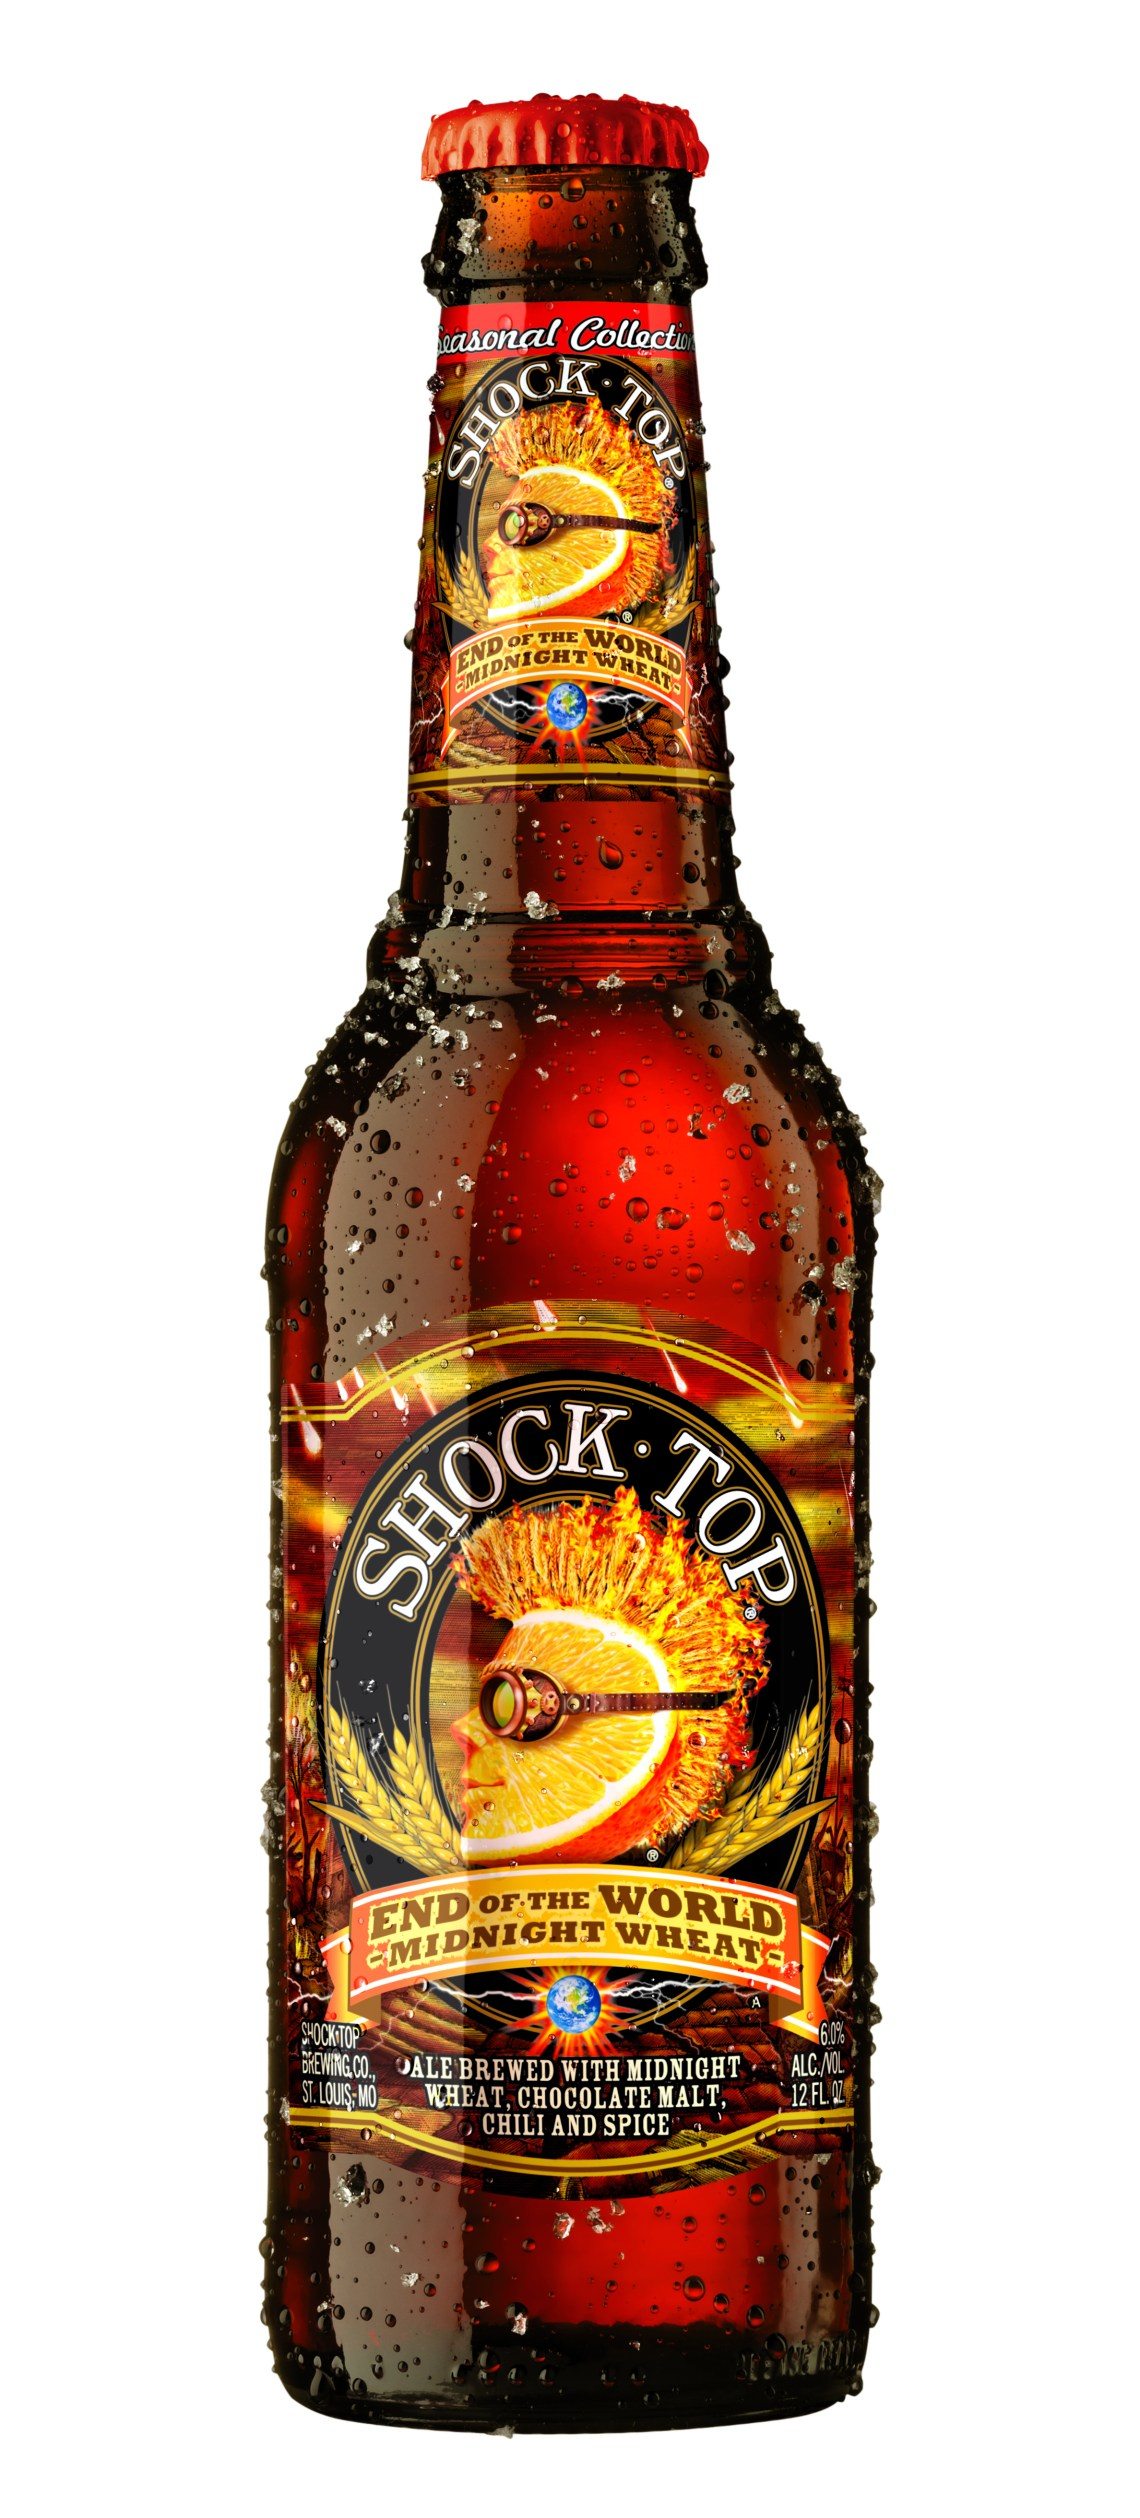 Shock Top End of the World Midnight Wheat Beer